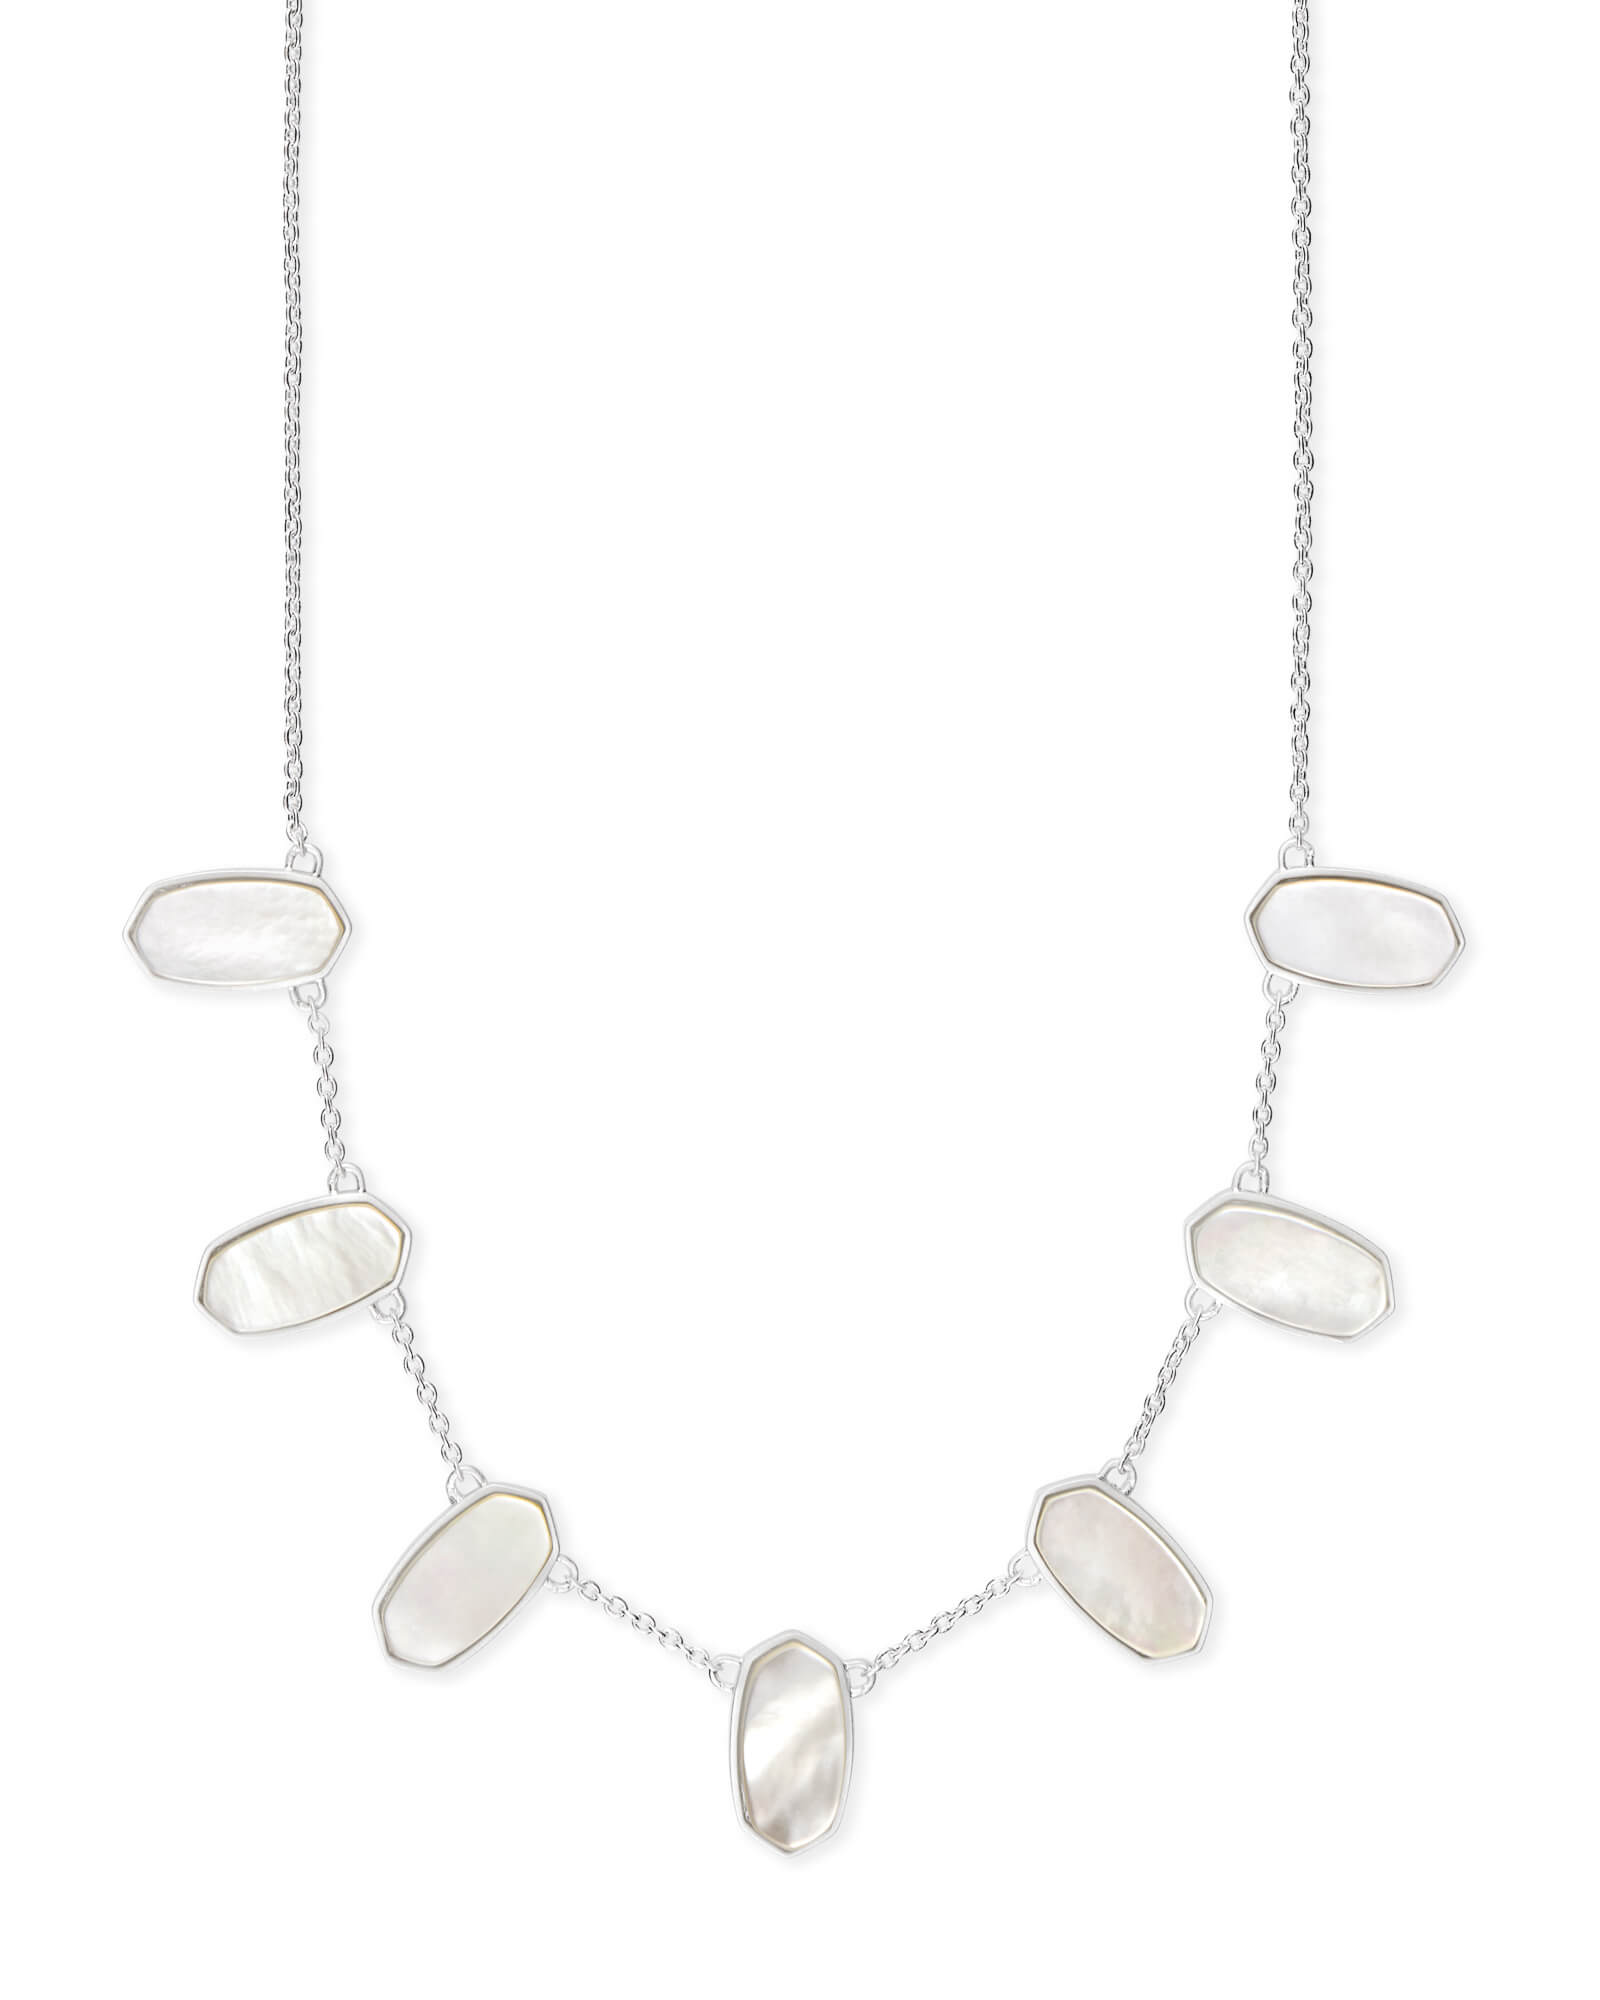 Meadow Bright Silver Collar Necklace in Ivory Pearl